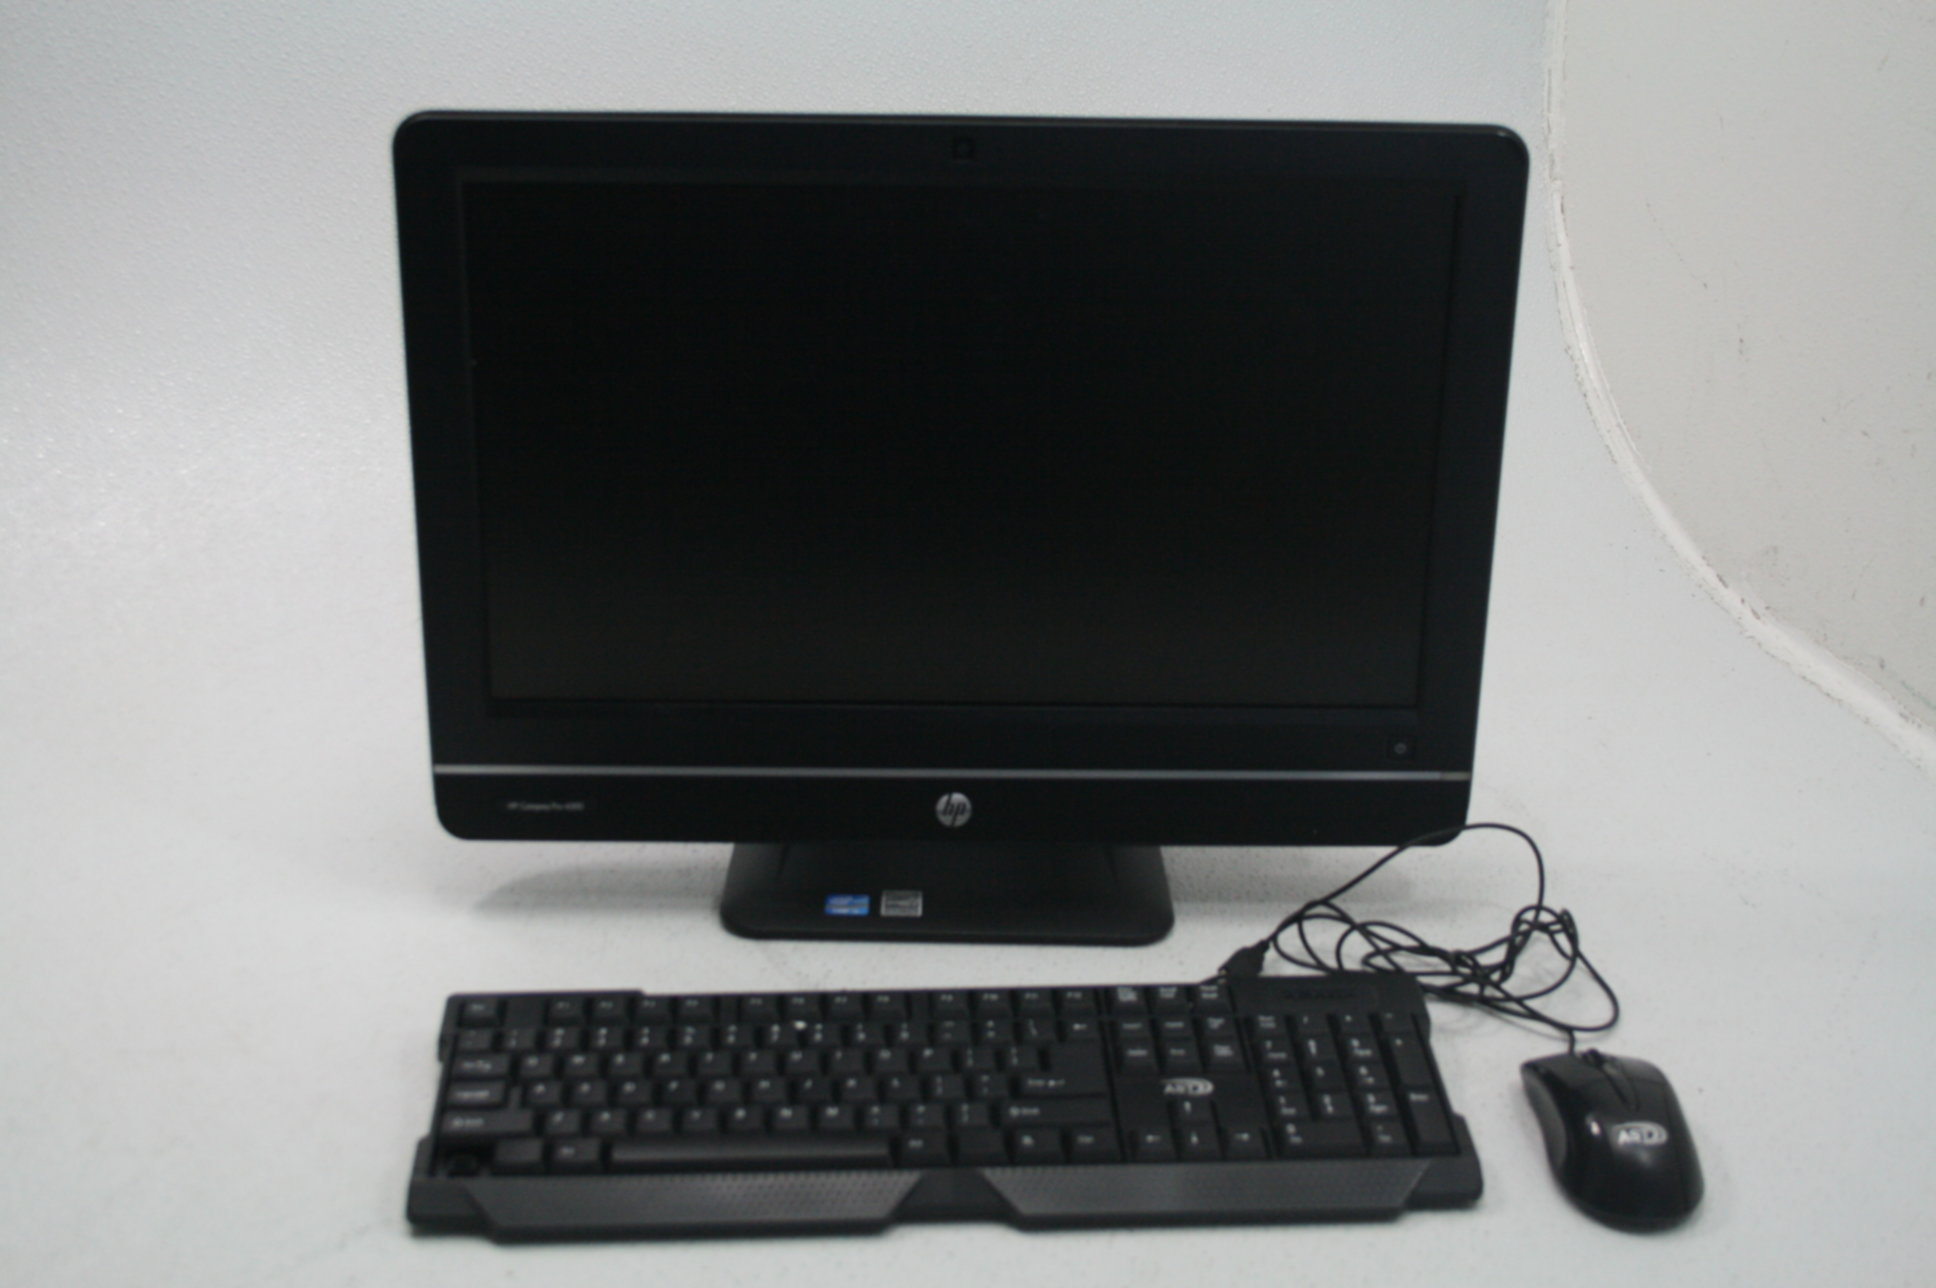 hp compaq pro 4300 all in one manual